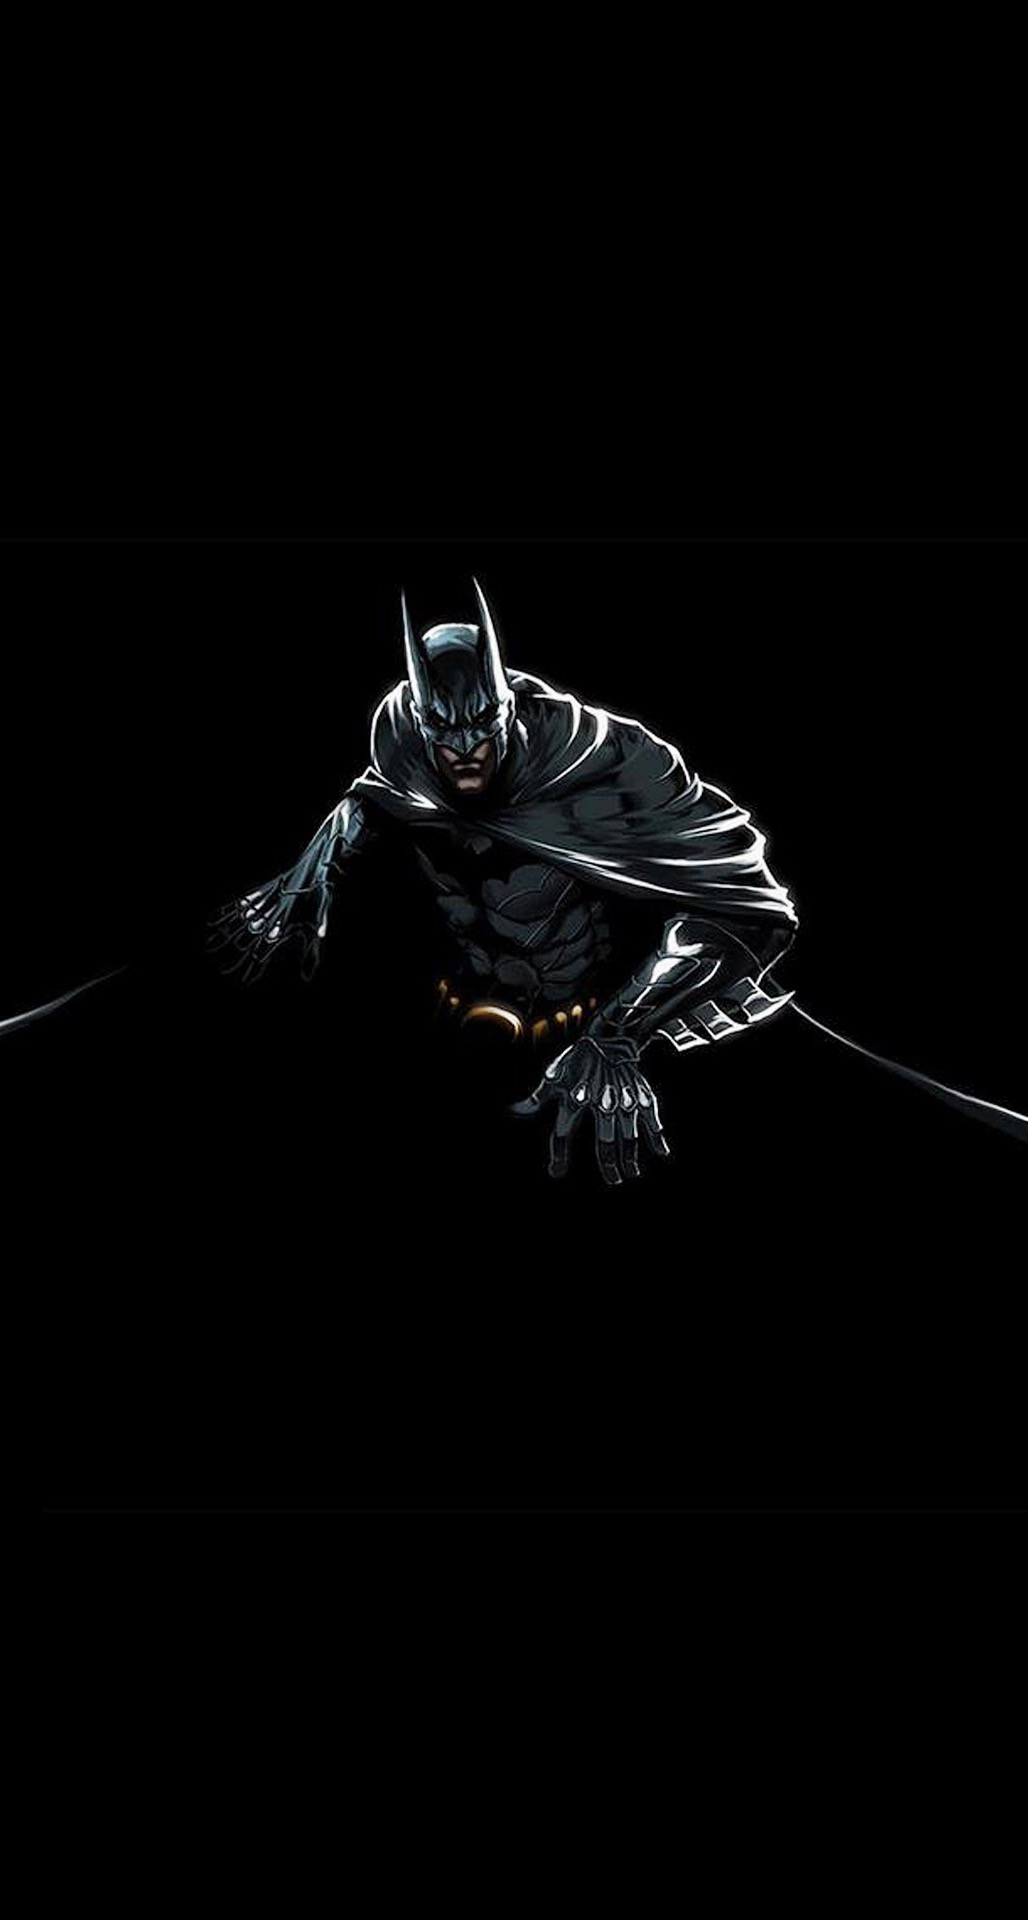 Dark knight wallpaper mobile